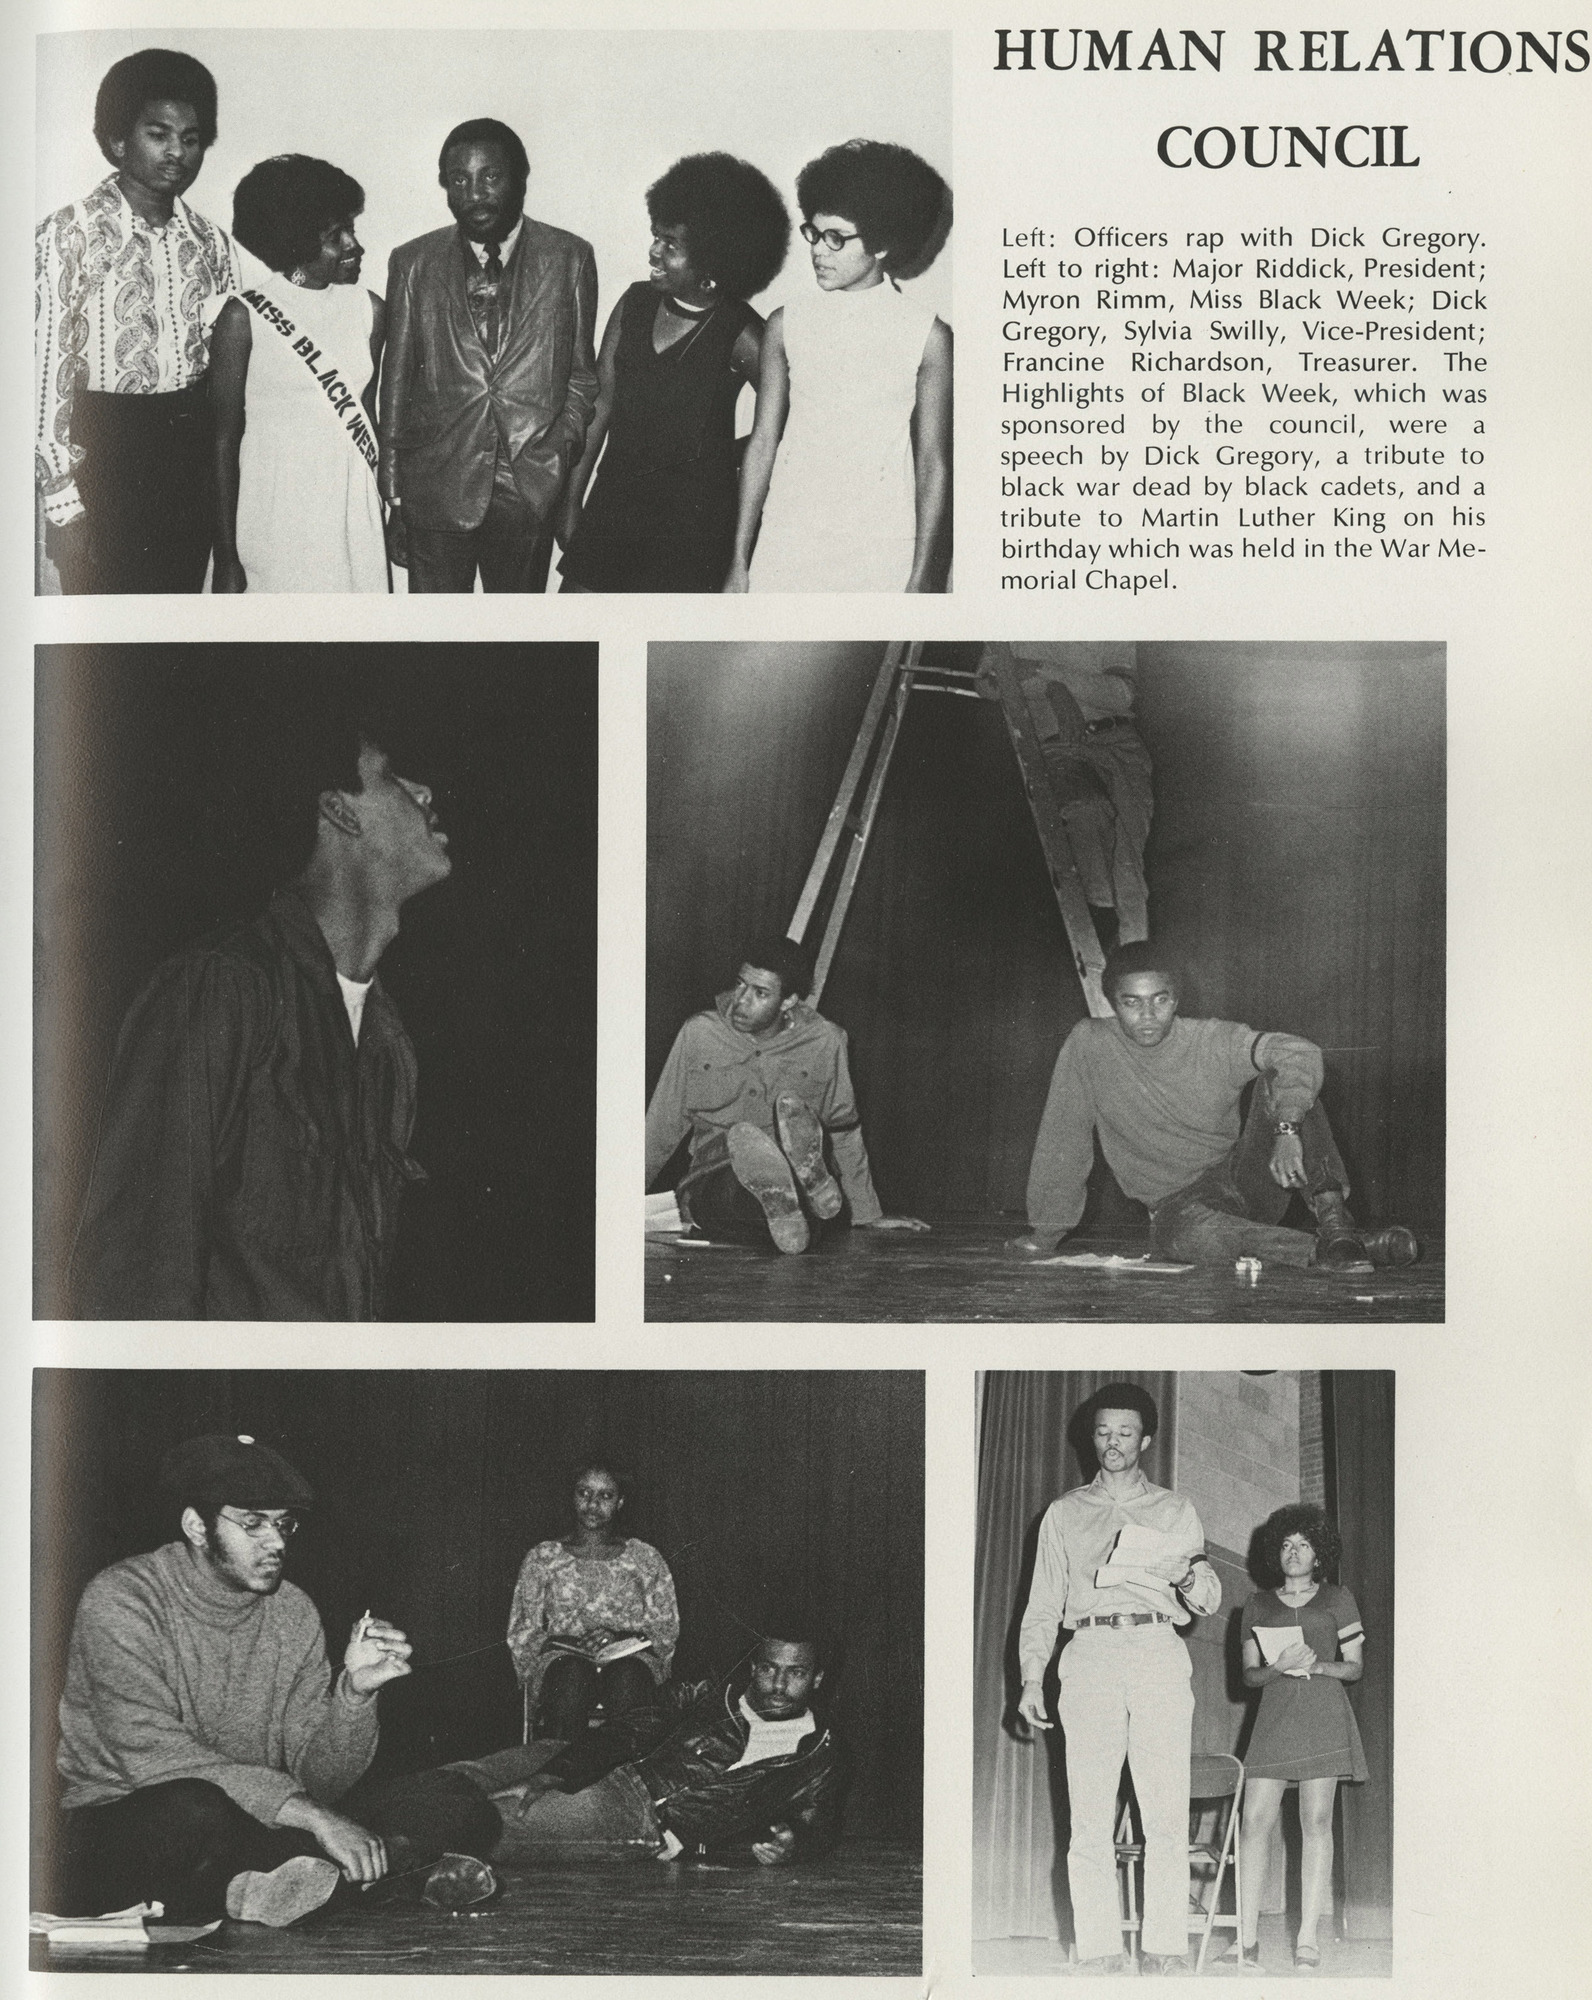 http://spec.lib.vt.edu/pickup/Omeka_upload/Bugle1971_pg191_HumanRelations.jpg